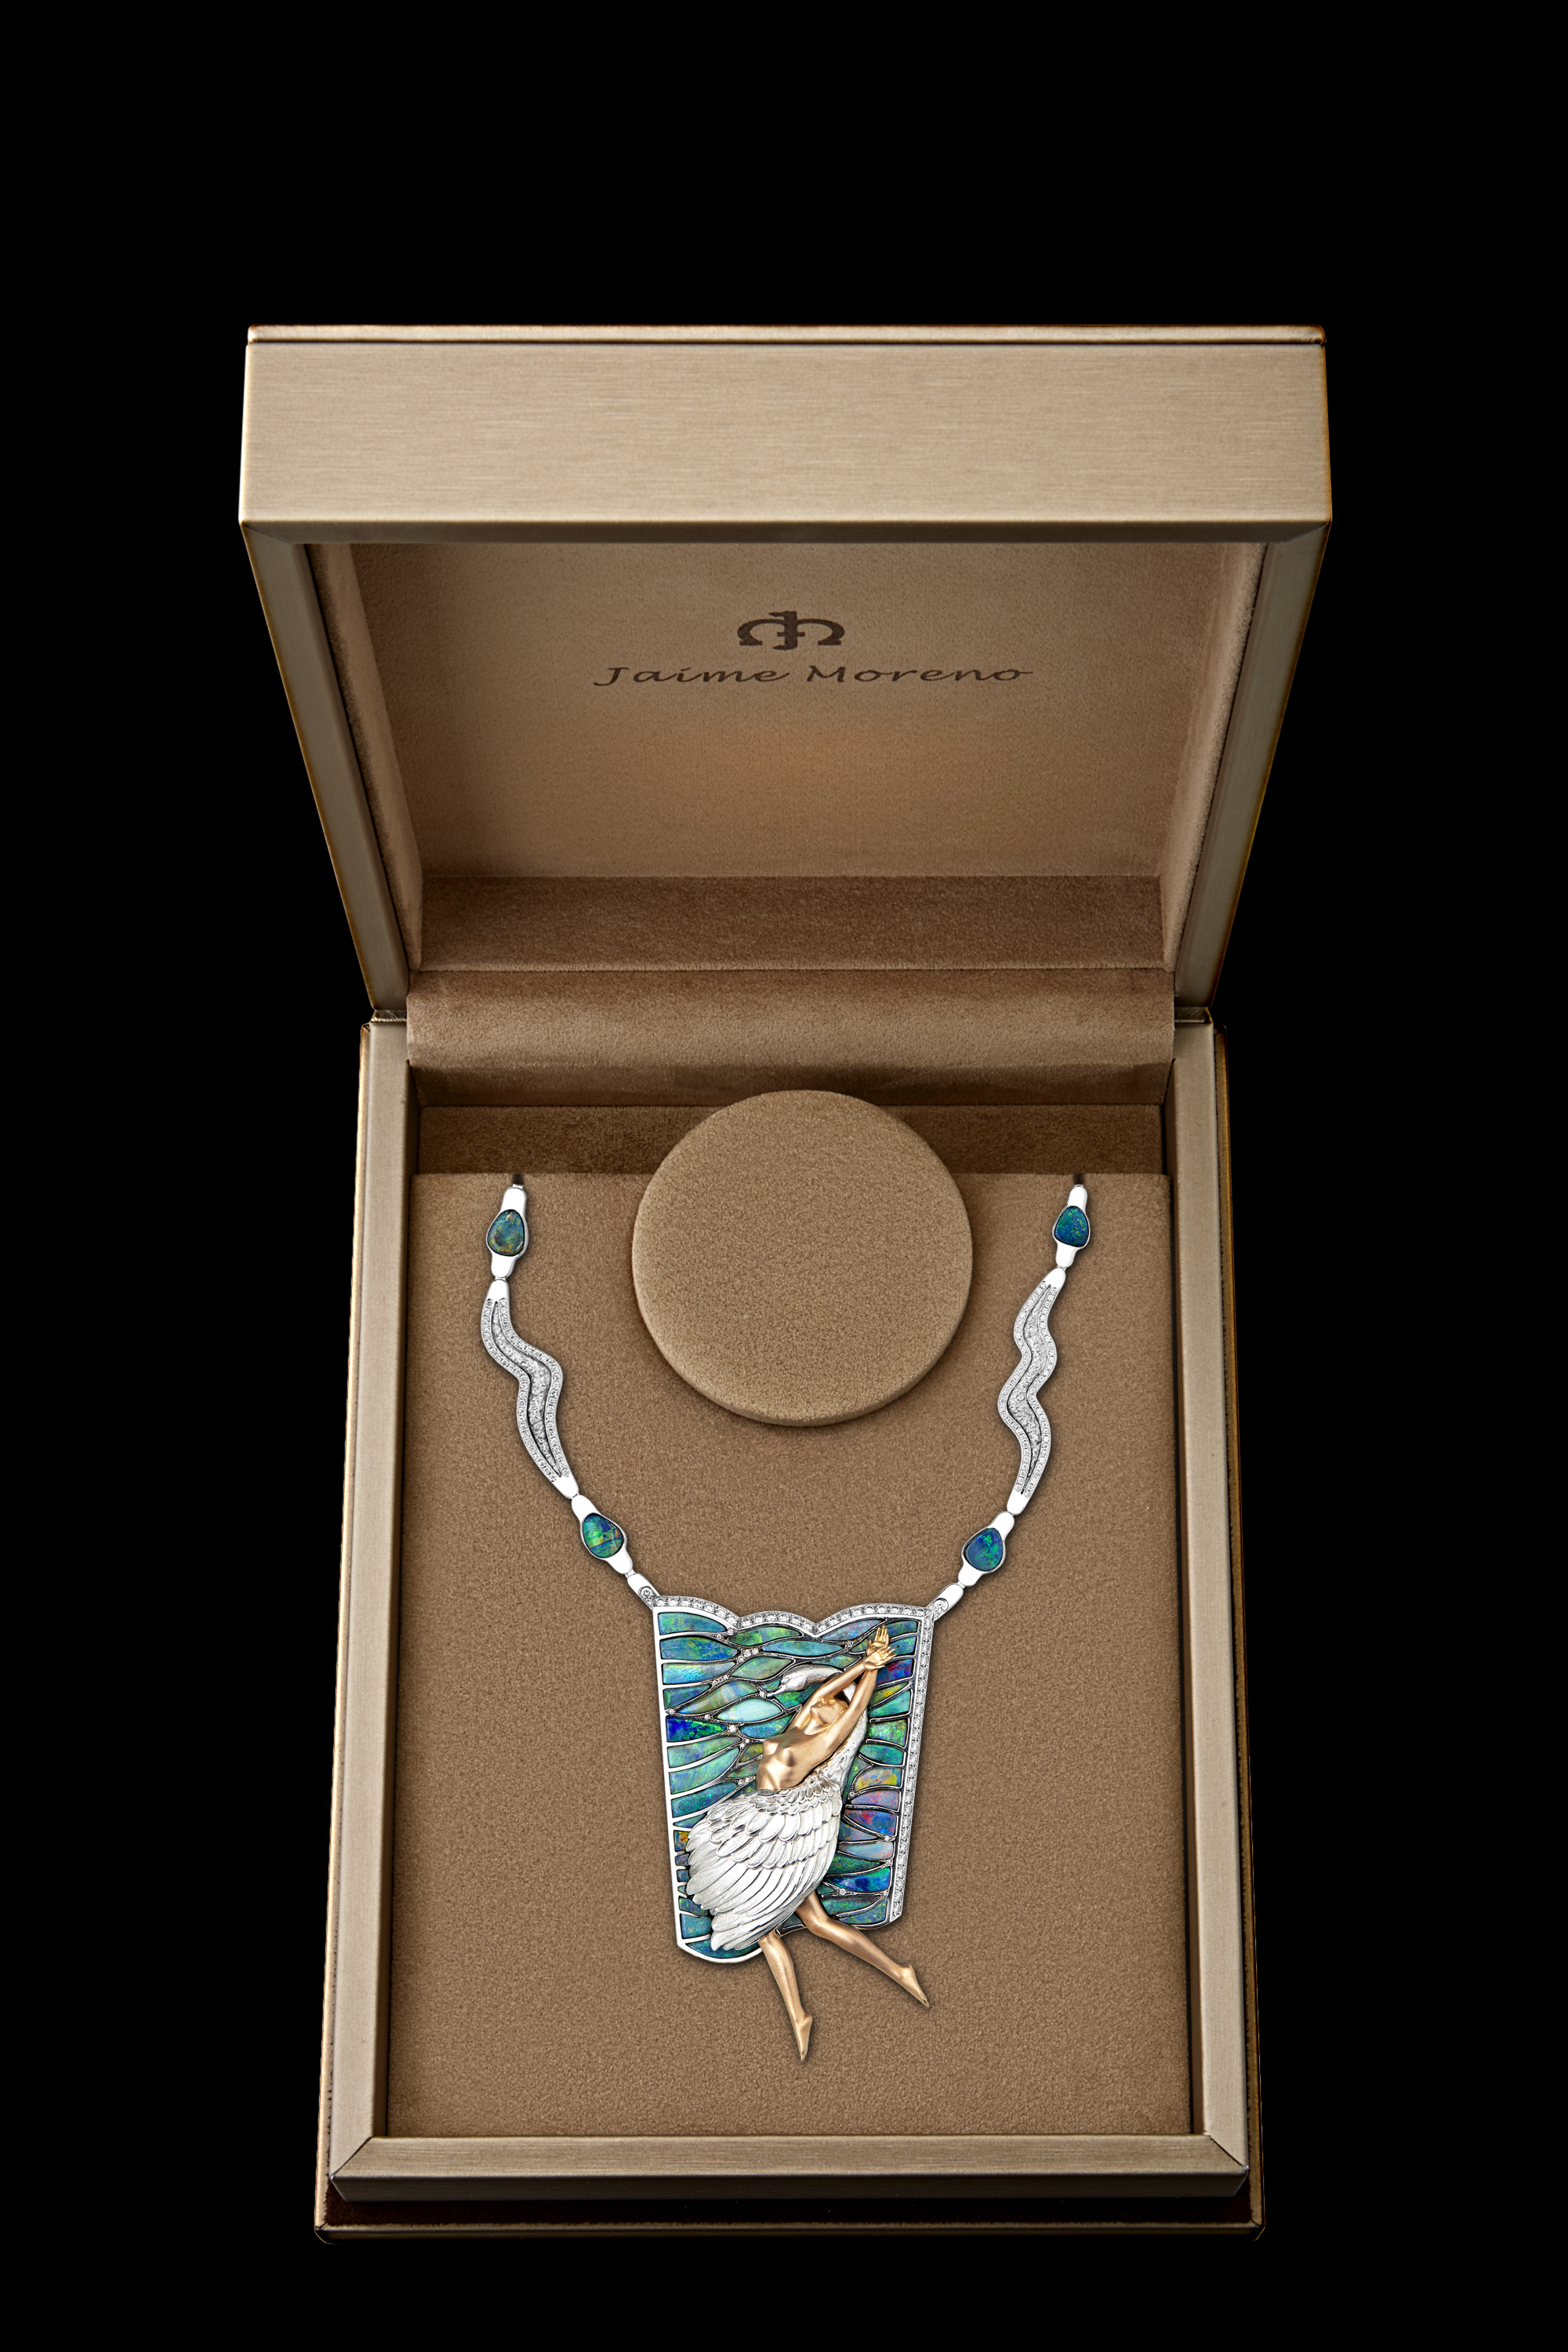 Jaime-Moreno-Art-in-Fine-Jewelry-Swan-Lake-Unique-Masterpieces-Packaging-2